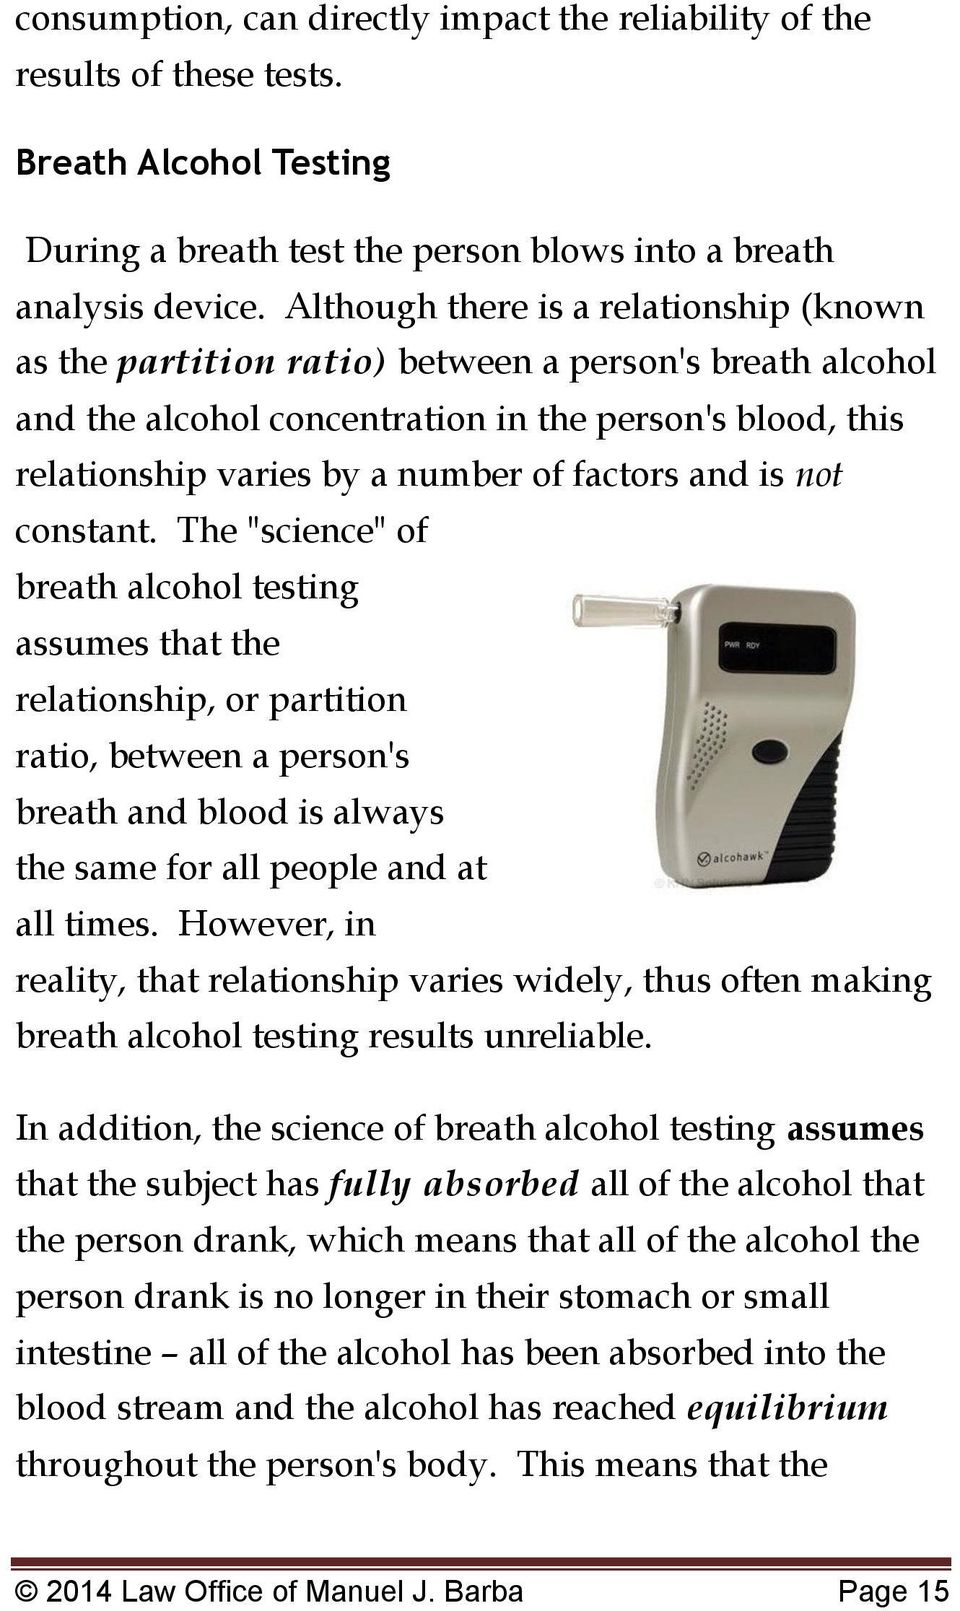 "and is not constant. The ""science"" of breath alcohol testing assumes that the relationship, or partition ratio, between a person's breath and blood is always the same for all people and at all times."